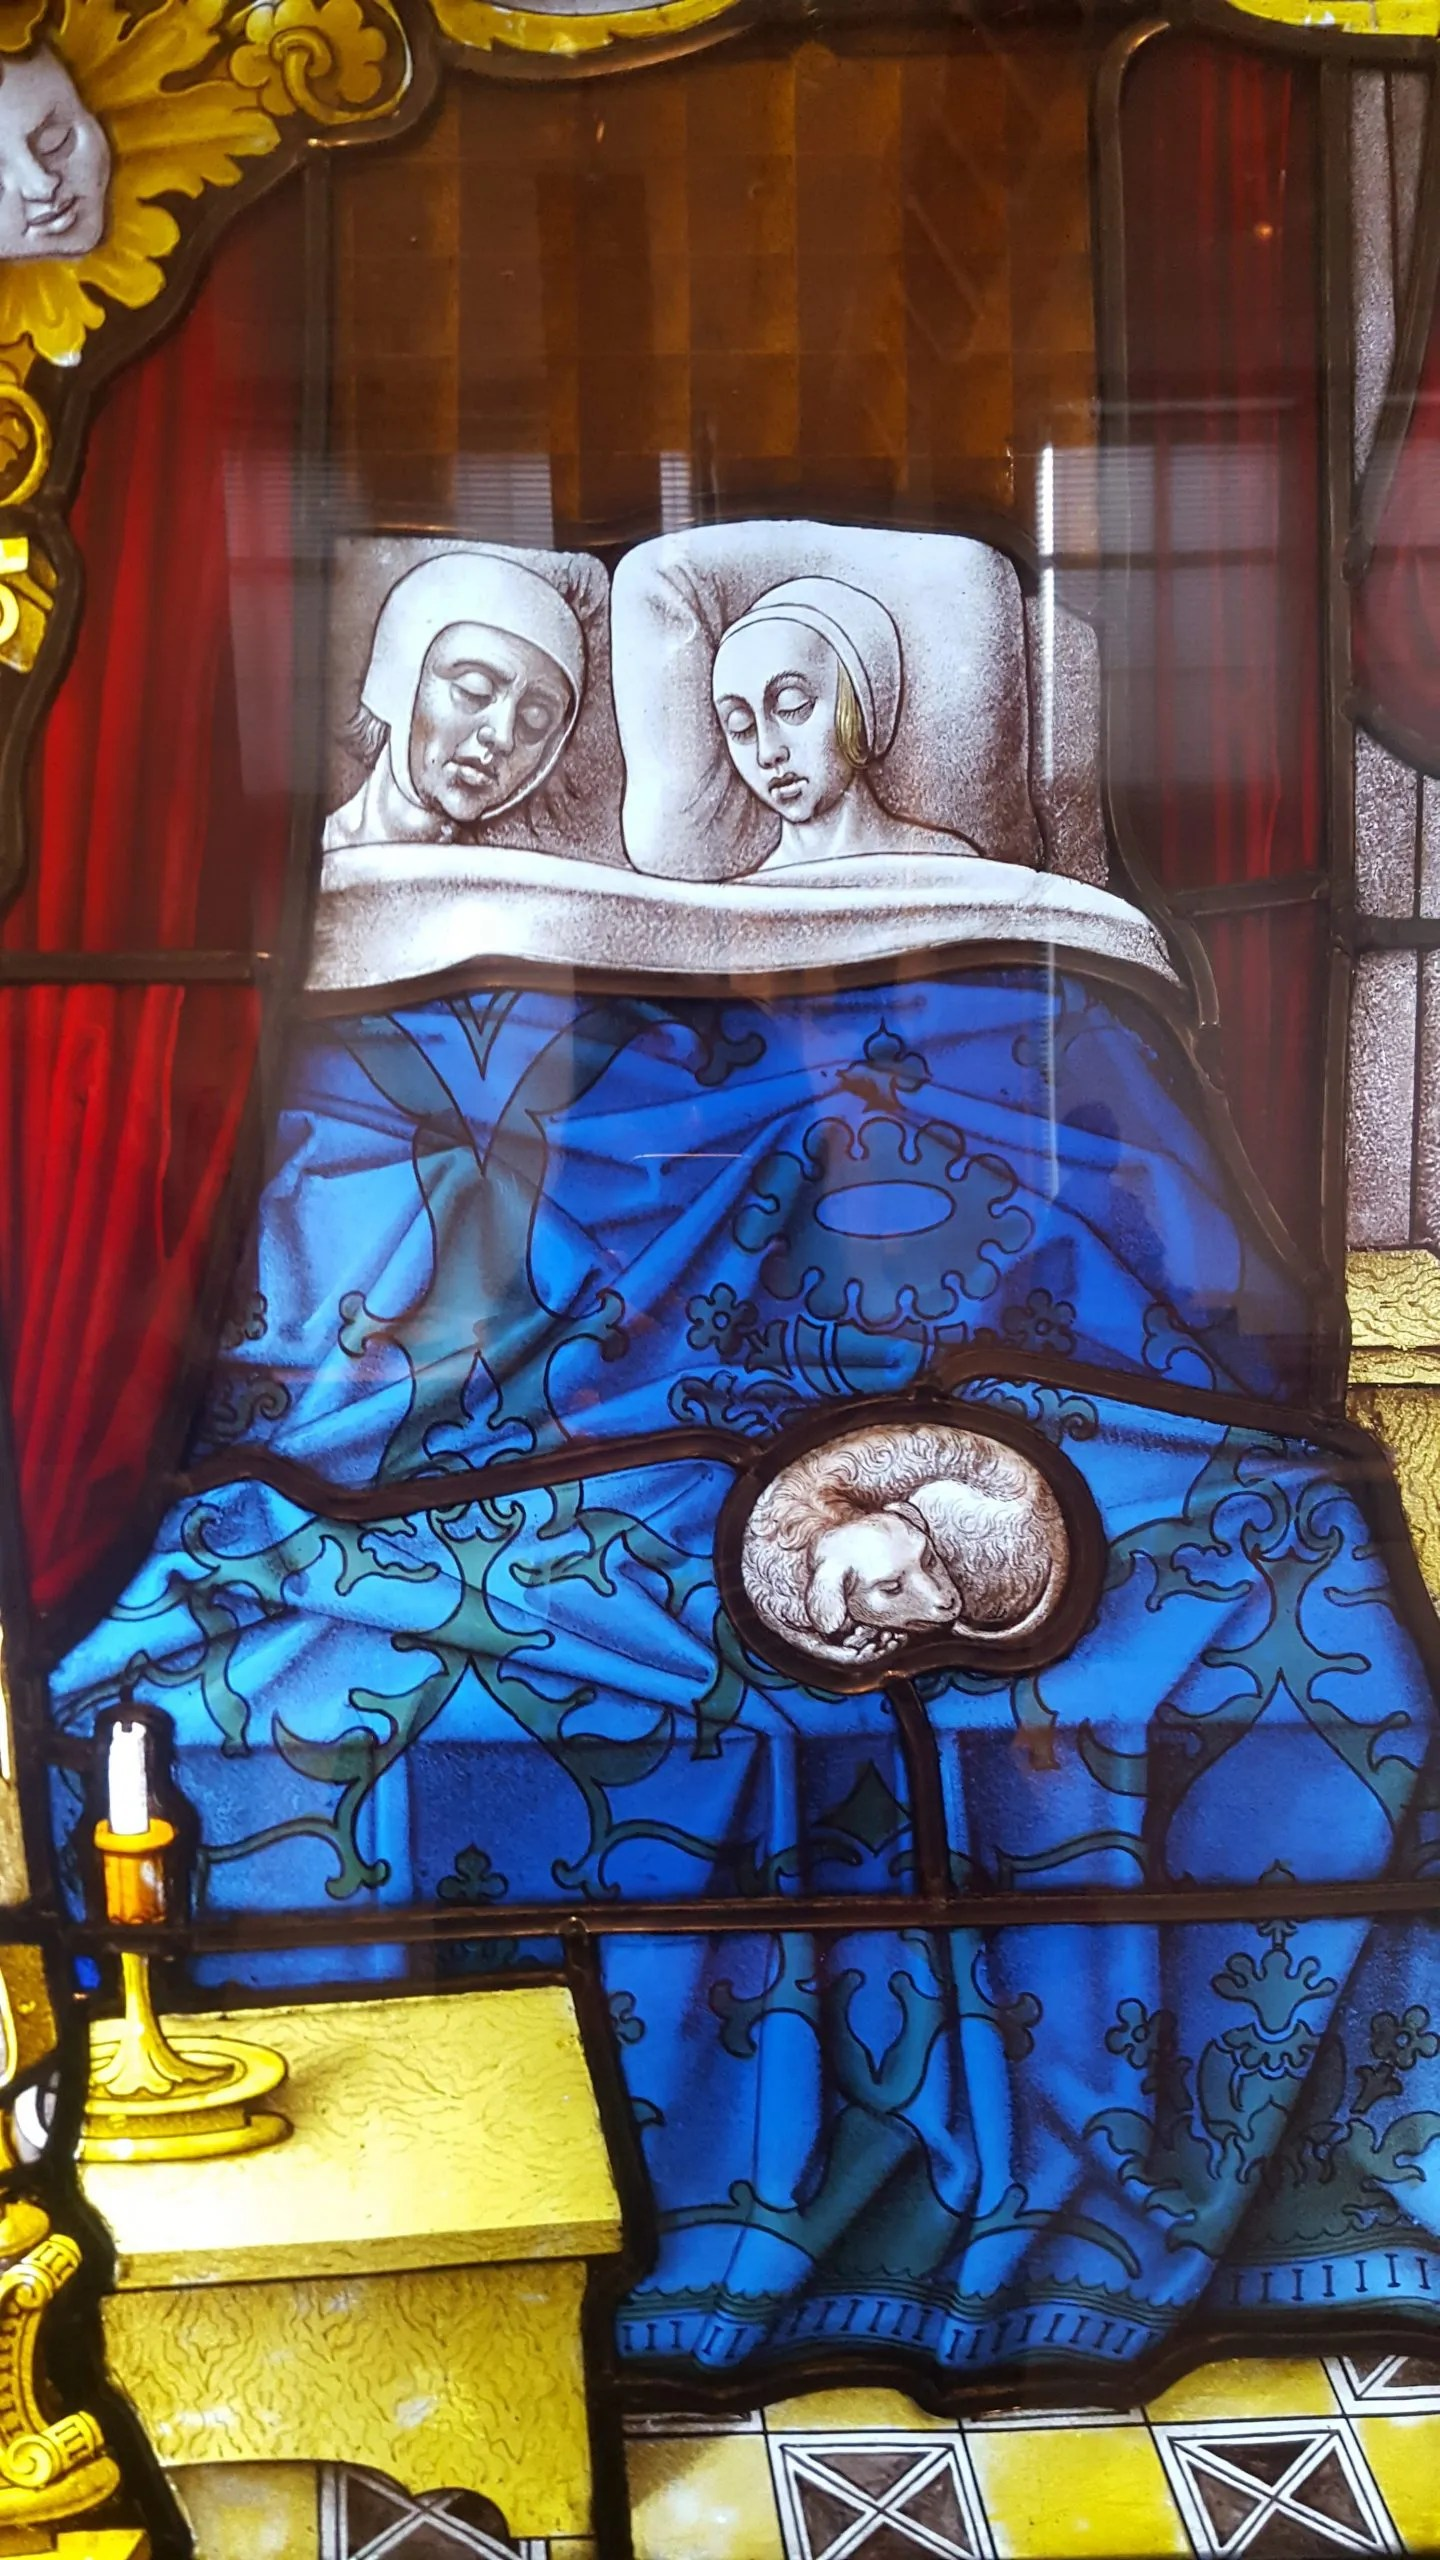 Stained glass showing a sleeping couple with a dog curled up on the bed. Tobias and Sara